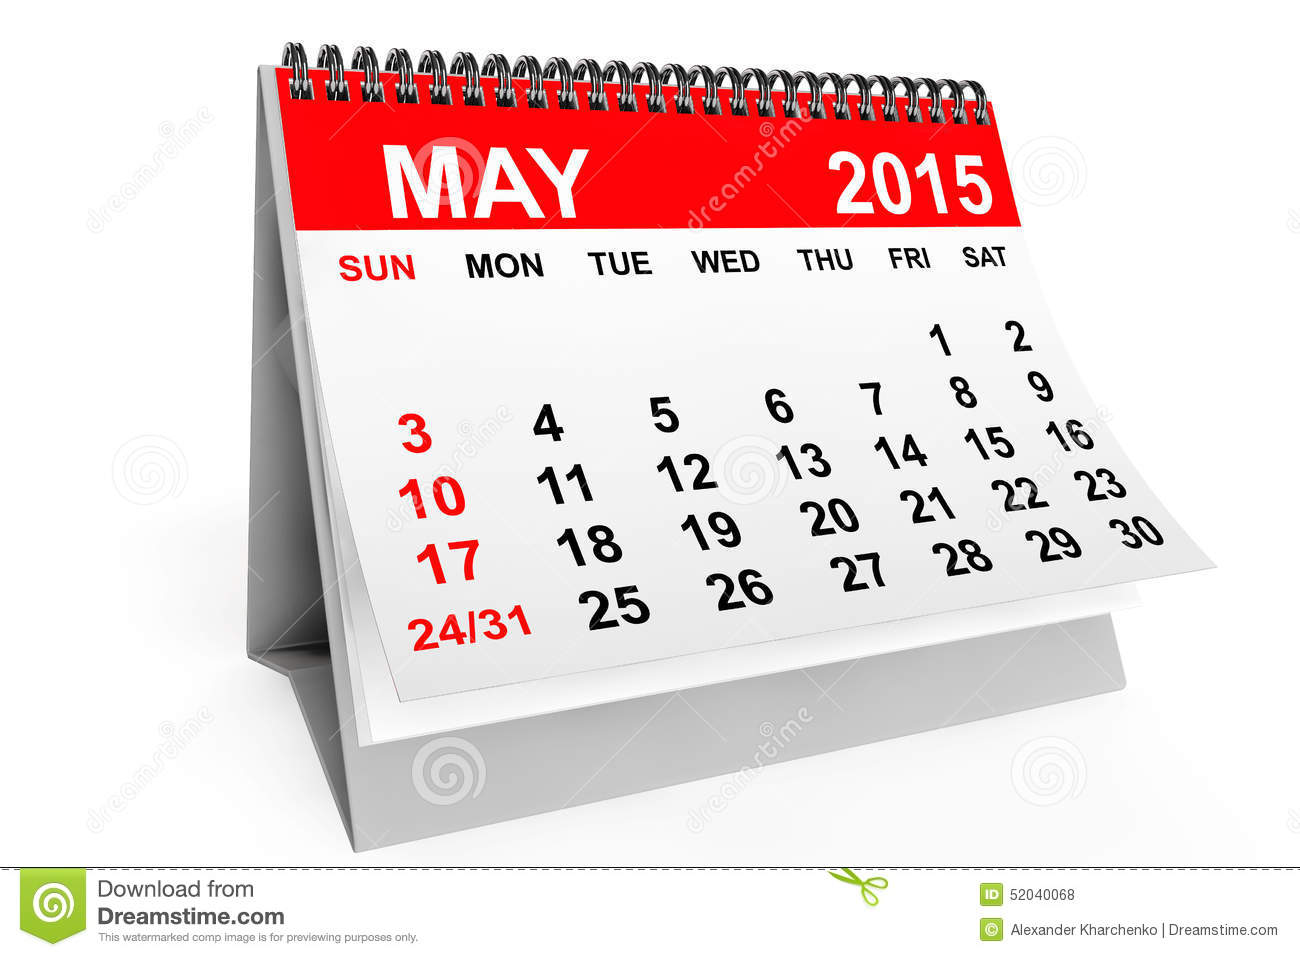 April 2015 calendar clipart. Clipartfest may